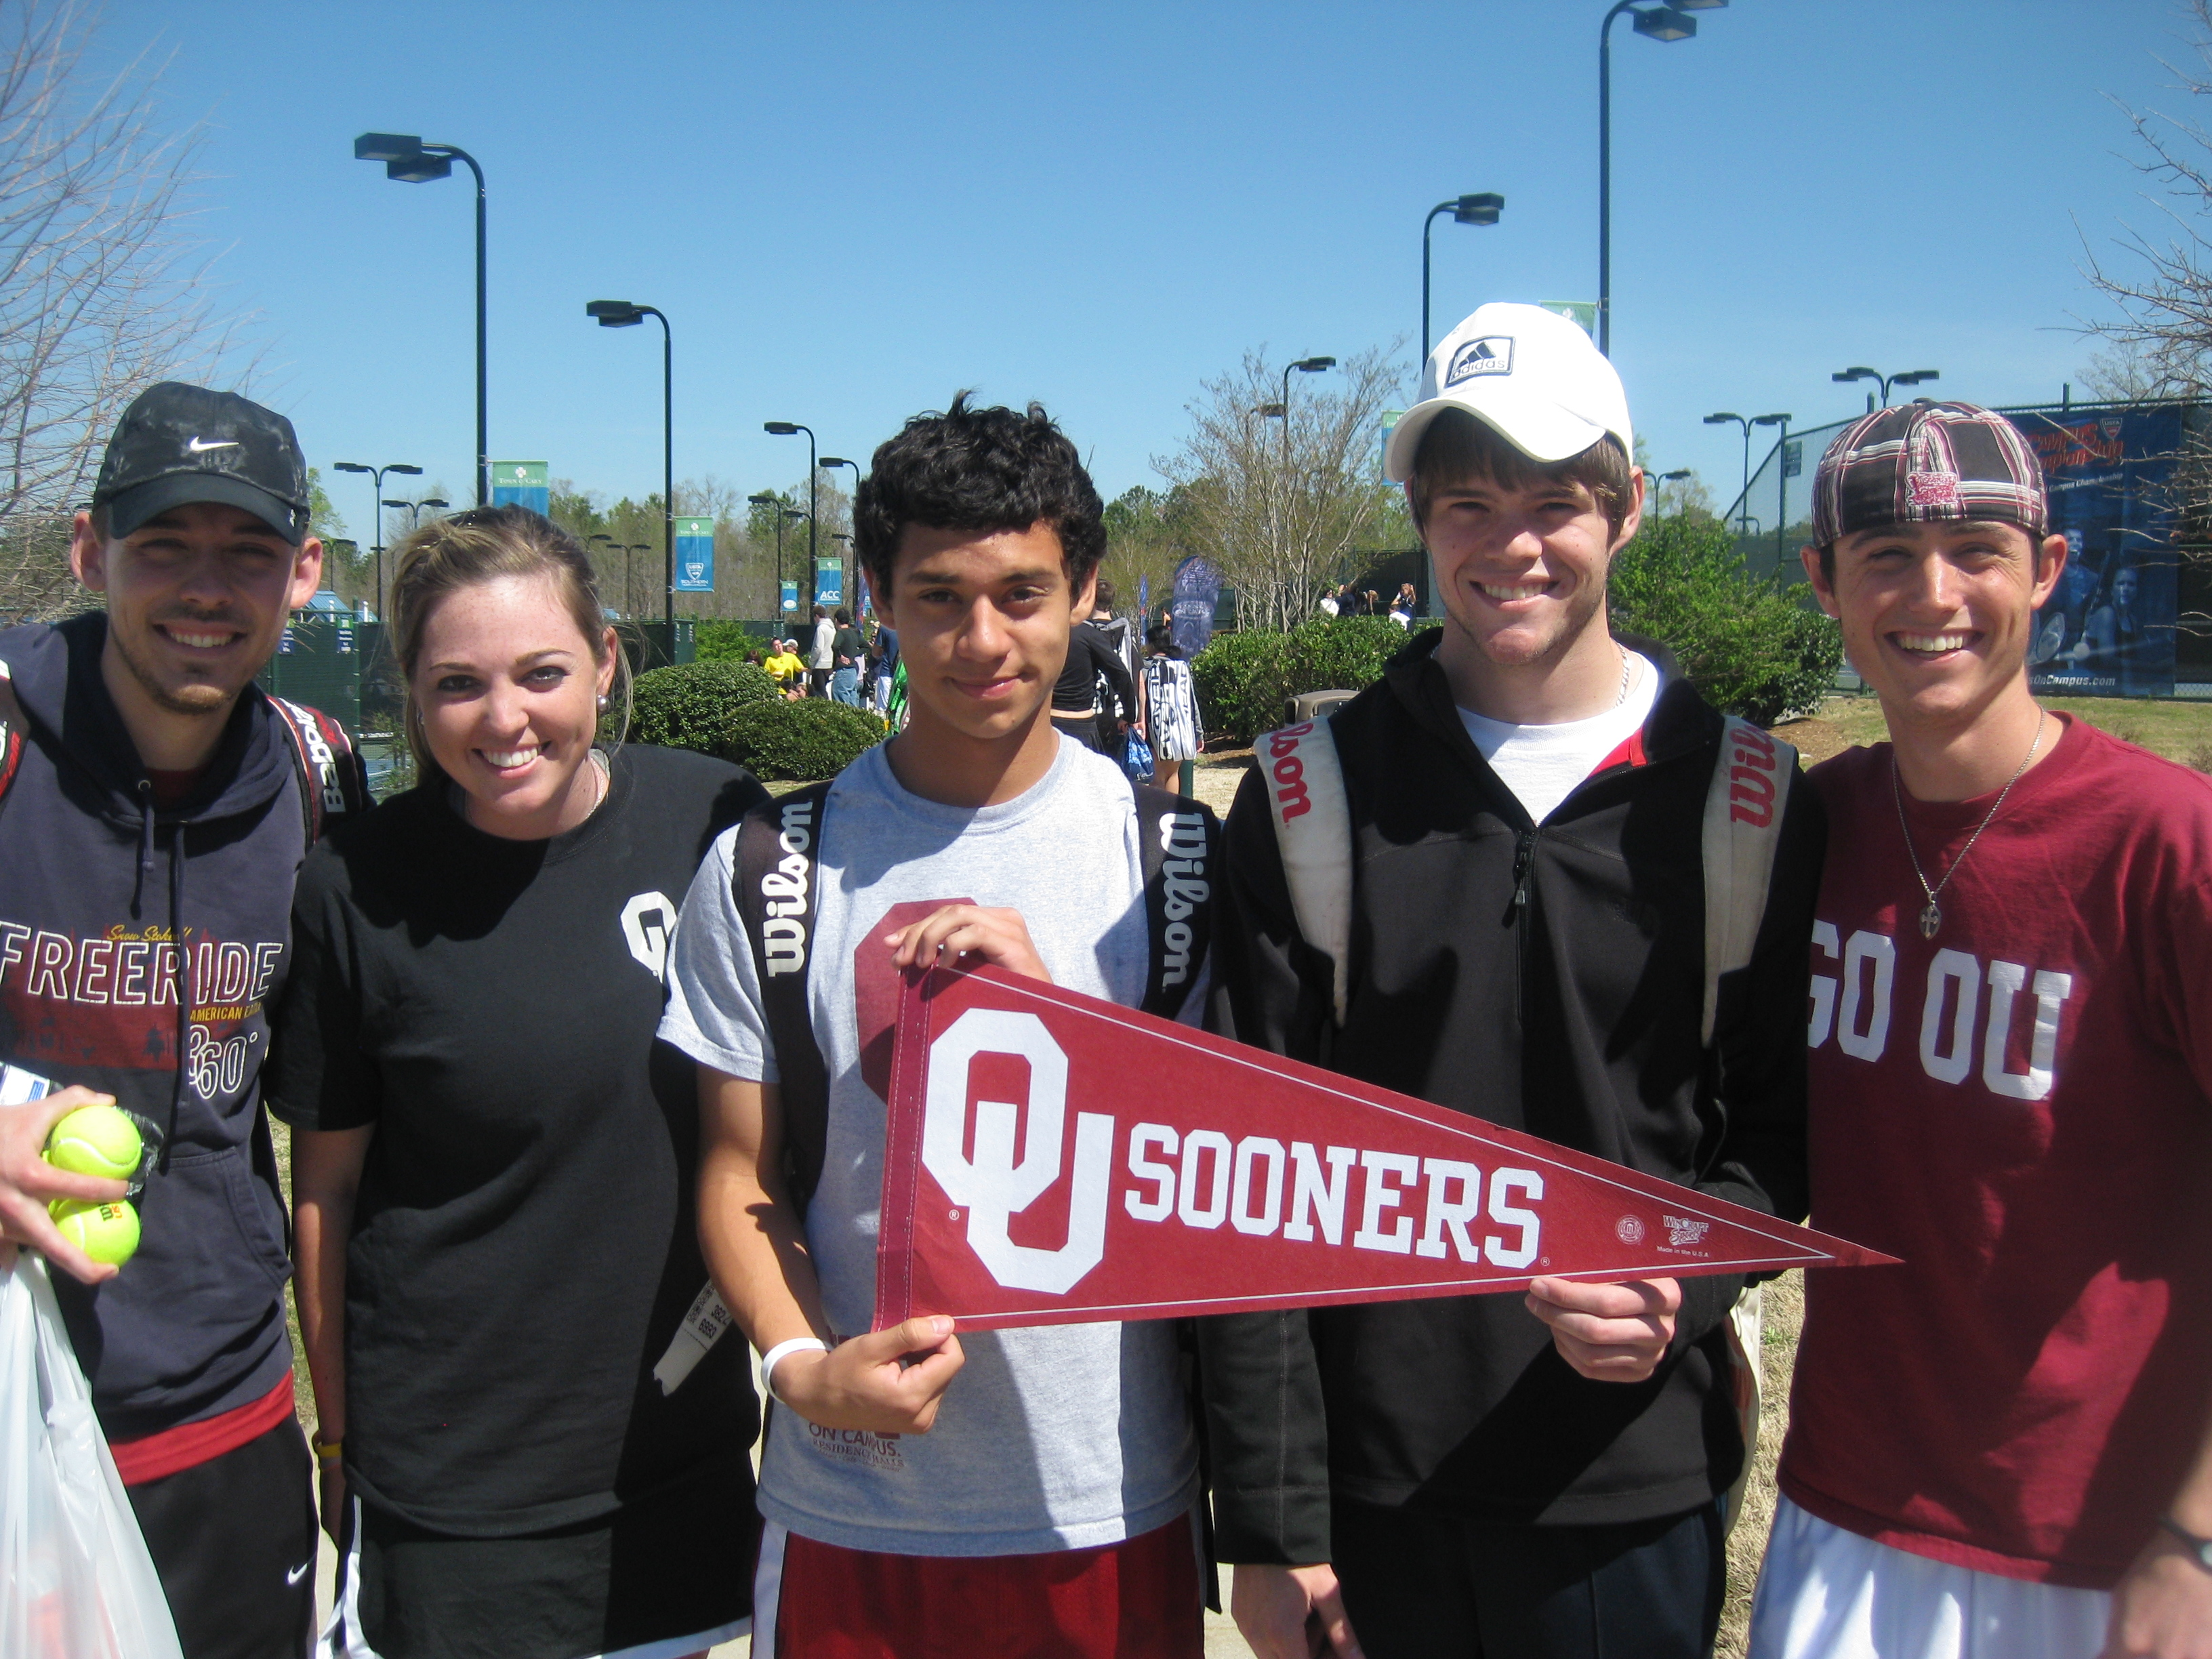 University of Oklahoma Club Tennis Team Pennant